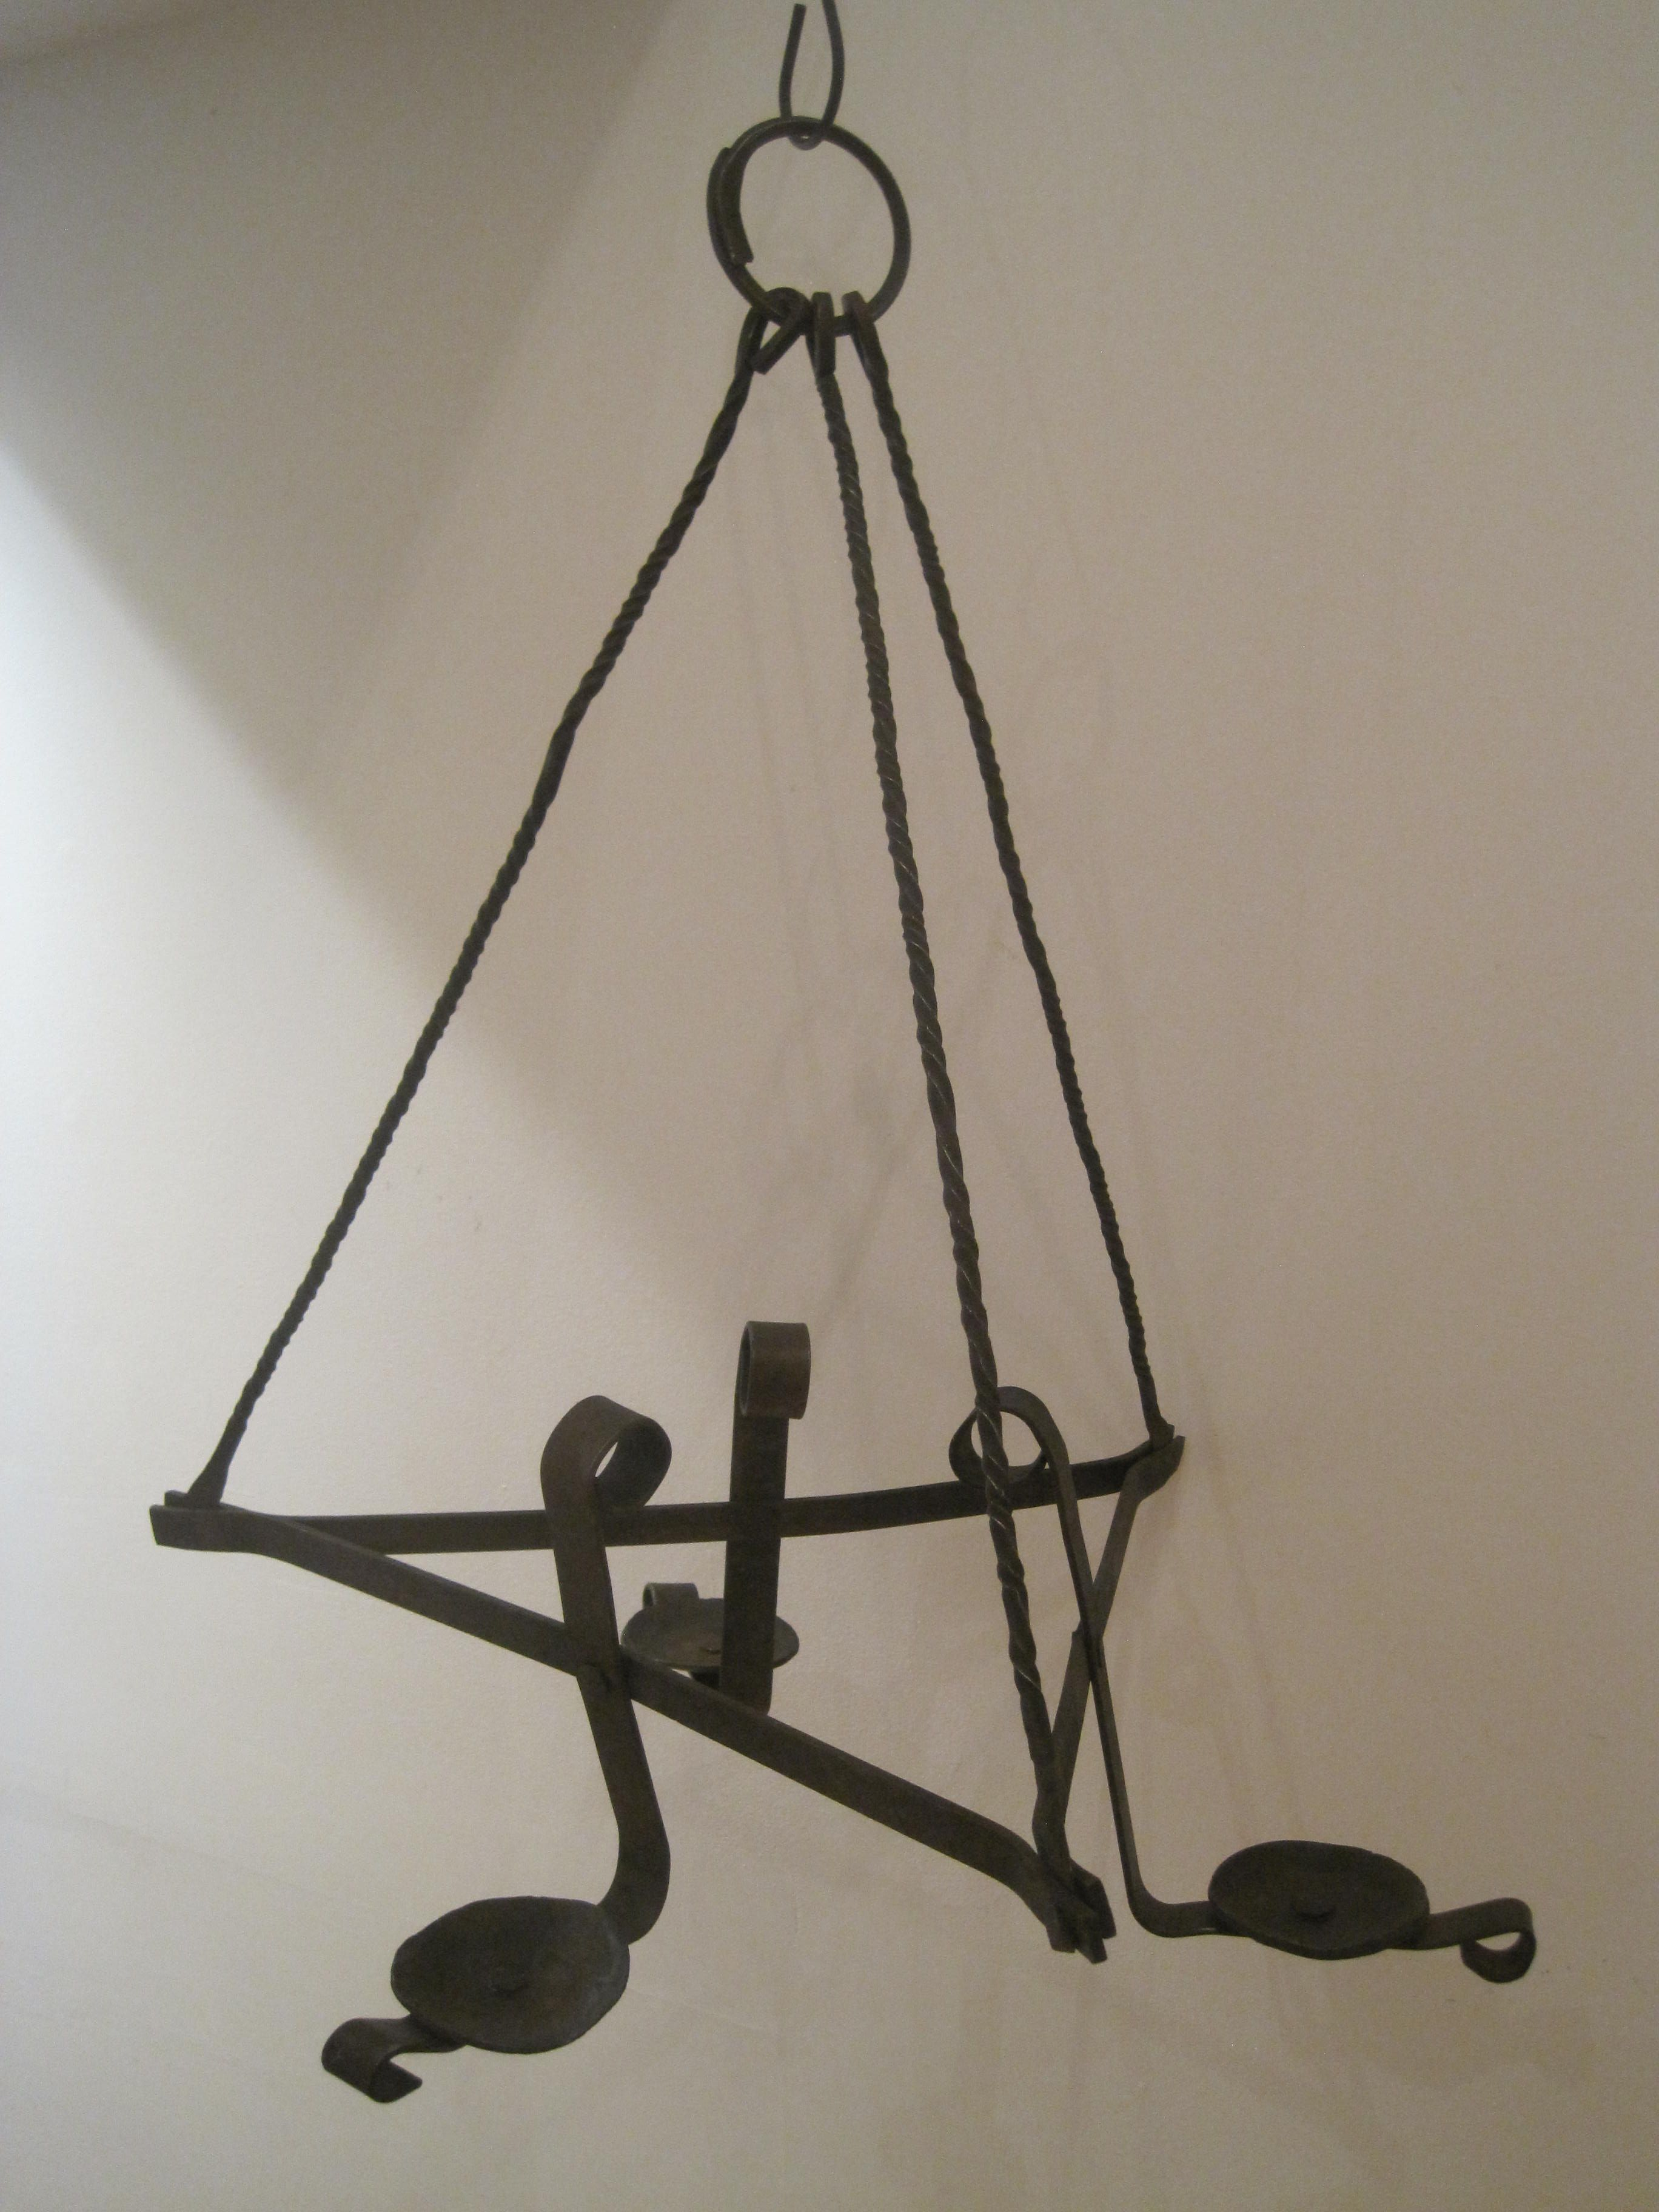 Antique 1700u0027s Revolutionary War Era Wrought Iron Candle Chandelier Dated  1779 Sold North Bayshore Antiques Sold